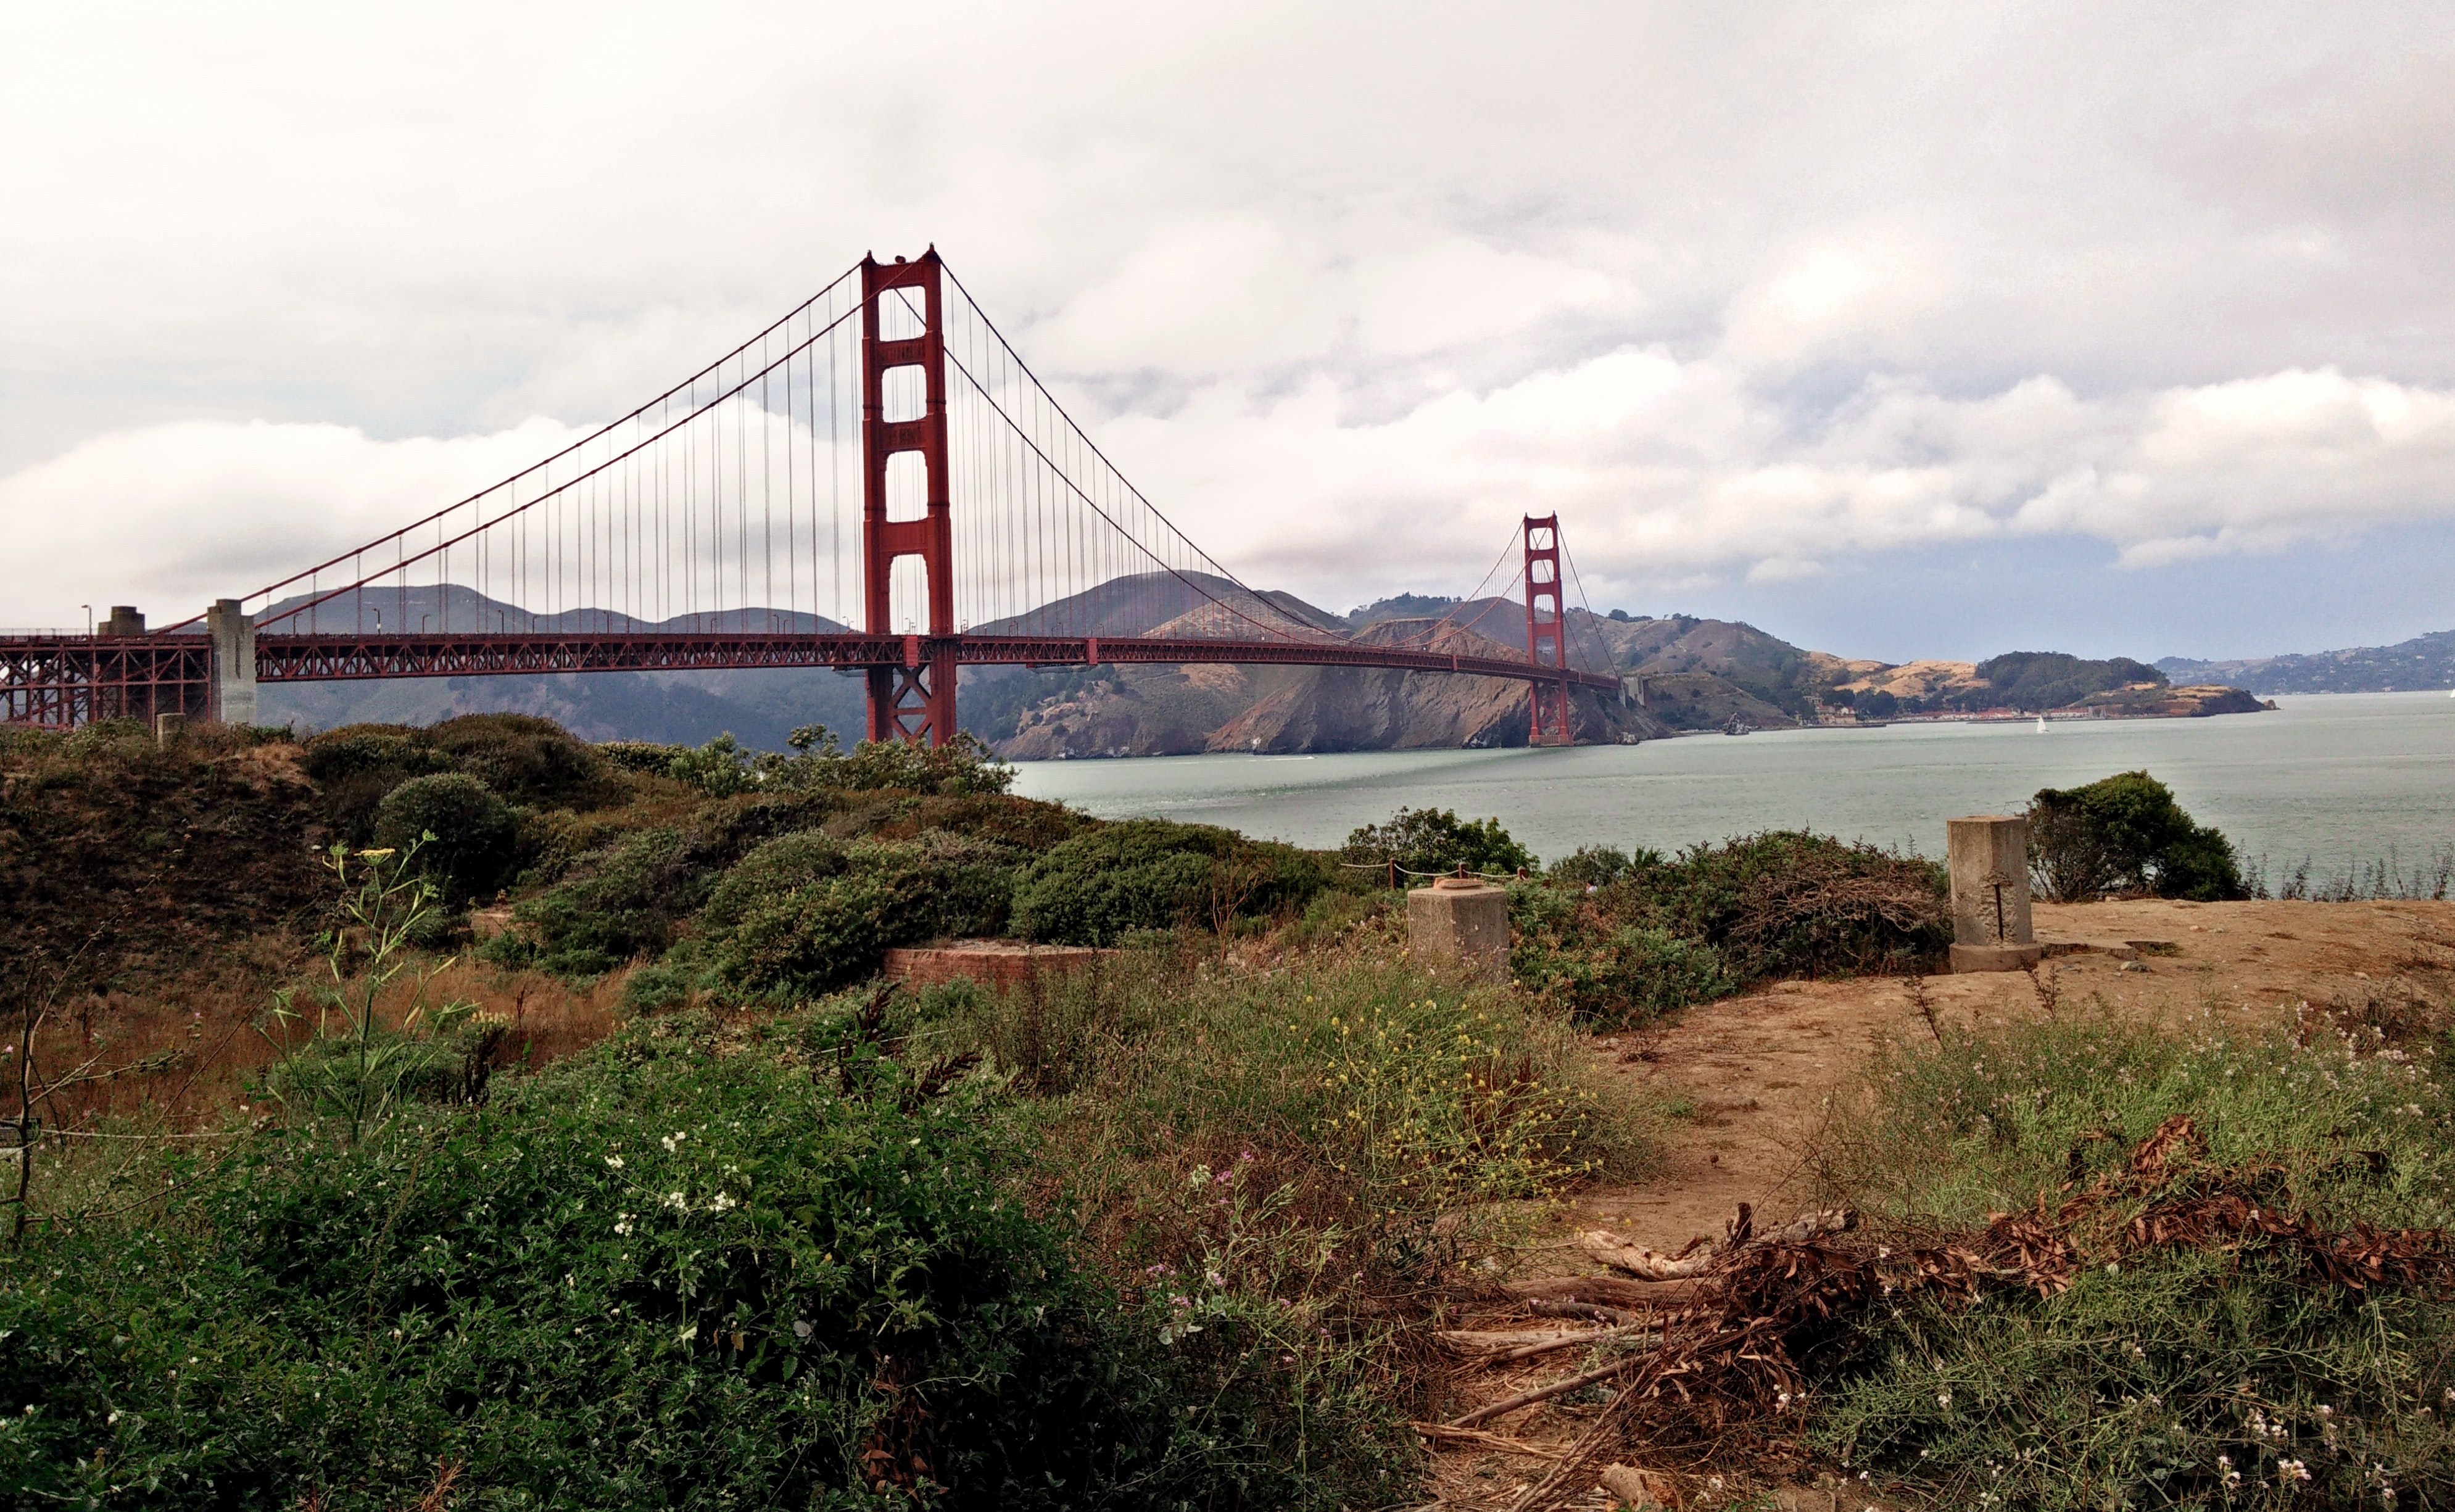 View of Golden Gate Bridge from the bushes